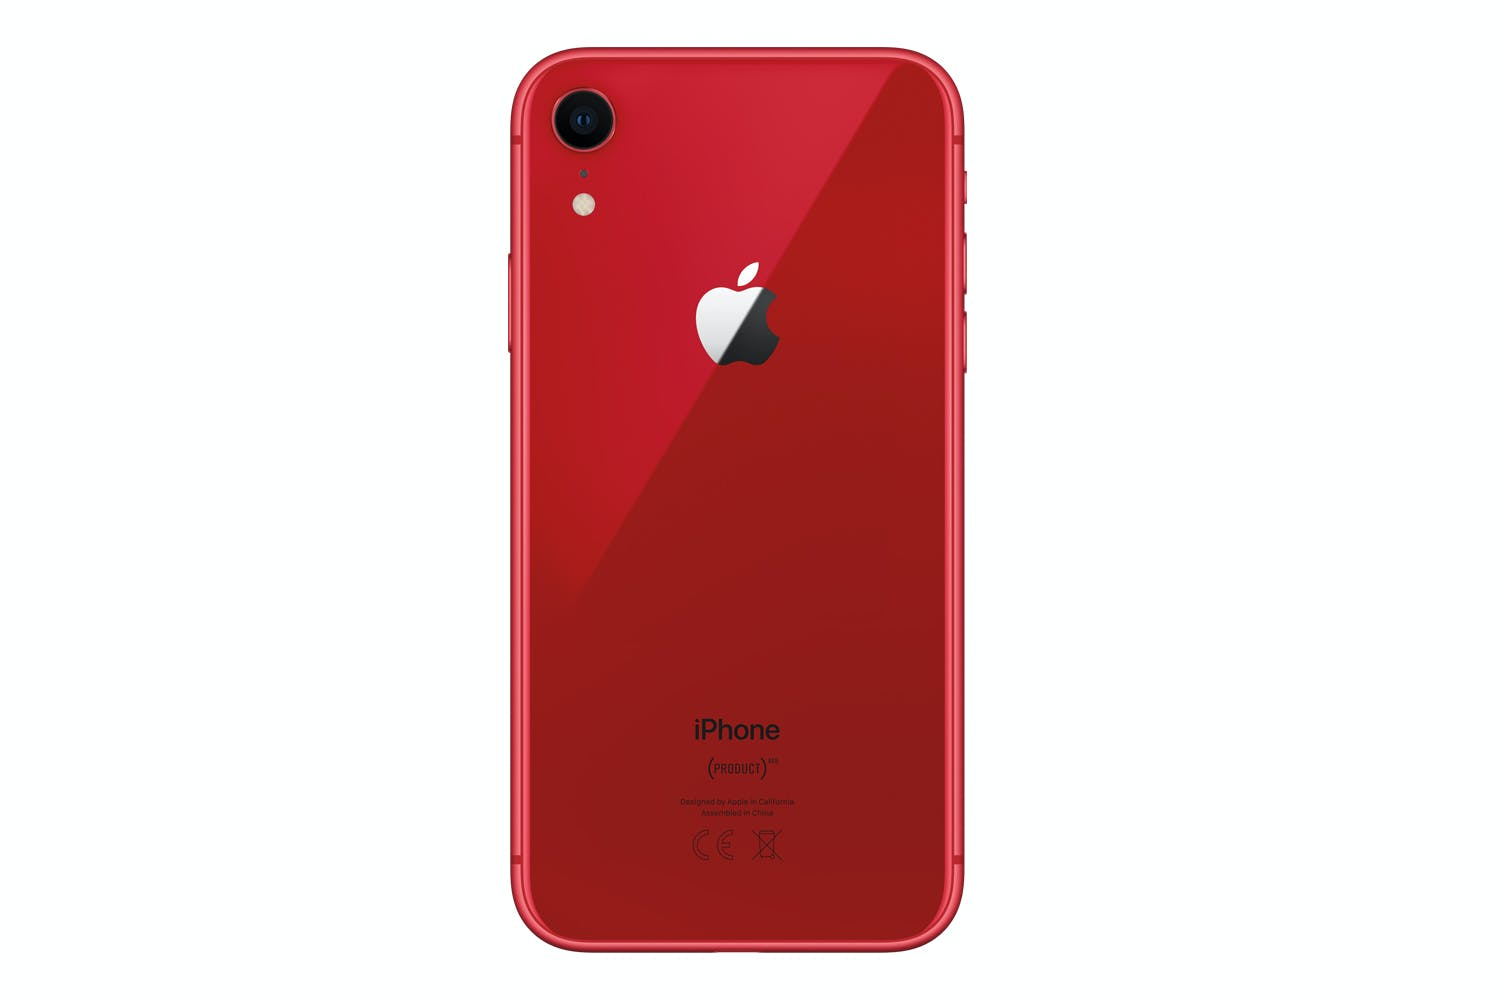 new product 10e77 a5cc8 iPhone XR | 128GB | (Product)Red